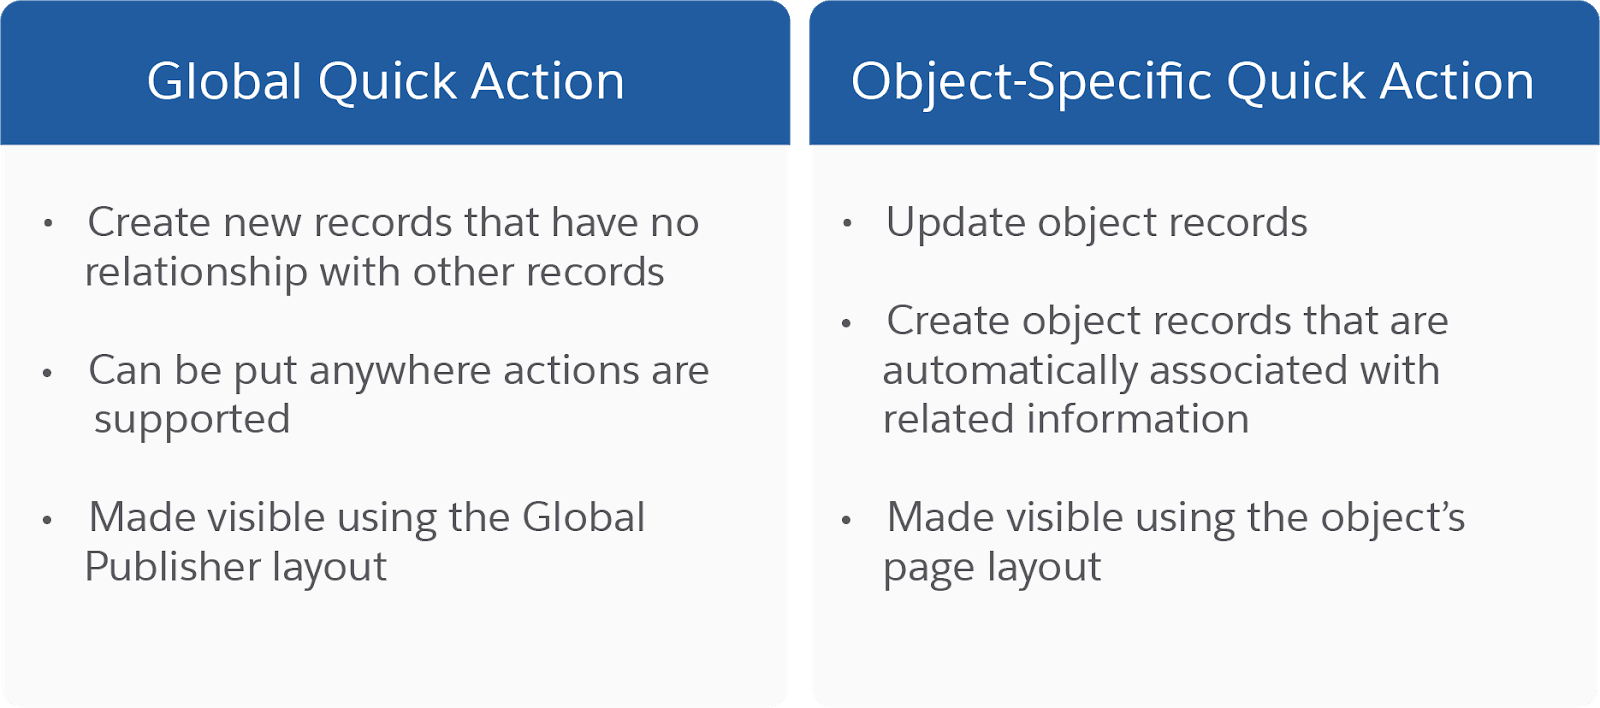 2 column chart comparing Global Quick Action features to Object-Specific Quick Action features. Global Quick Actions create new records that have no relationship with other records, can be put anywhere actions are supported, and can be made visible using the Global Publisher layout. Object-Specific Quick Actions update object records, create object records that are automatically associated with related information, and can be made visible using the object's page layout